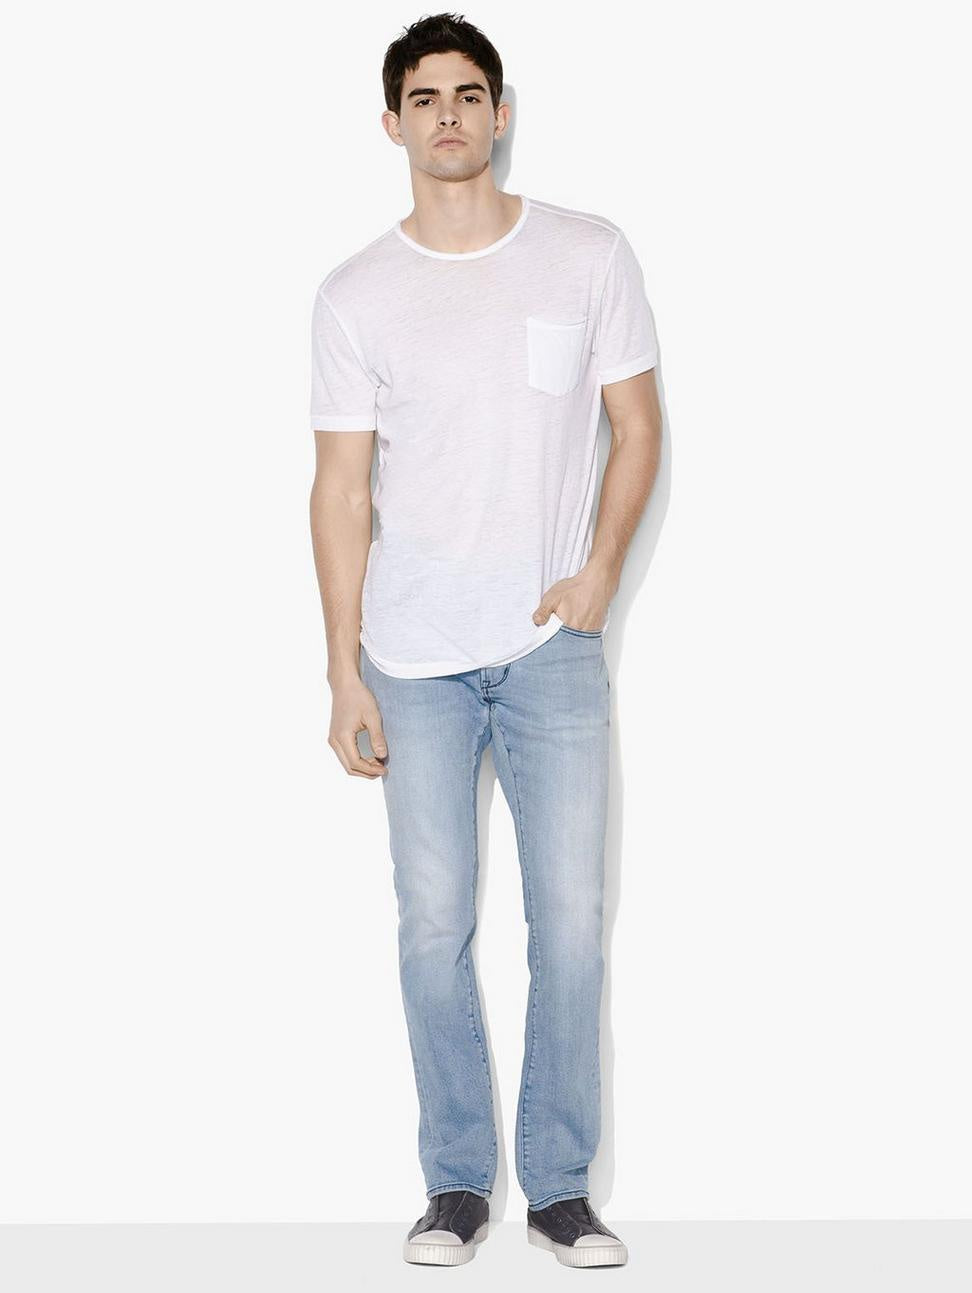 John Varvatos AMES S/S BURNOUT CREW WITH RAW EDGE White